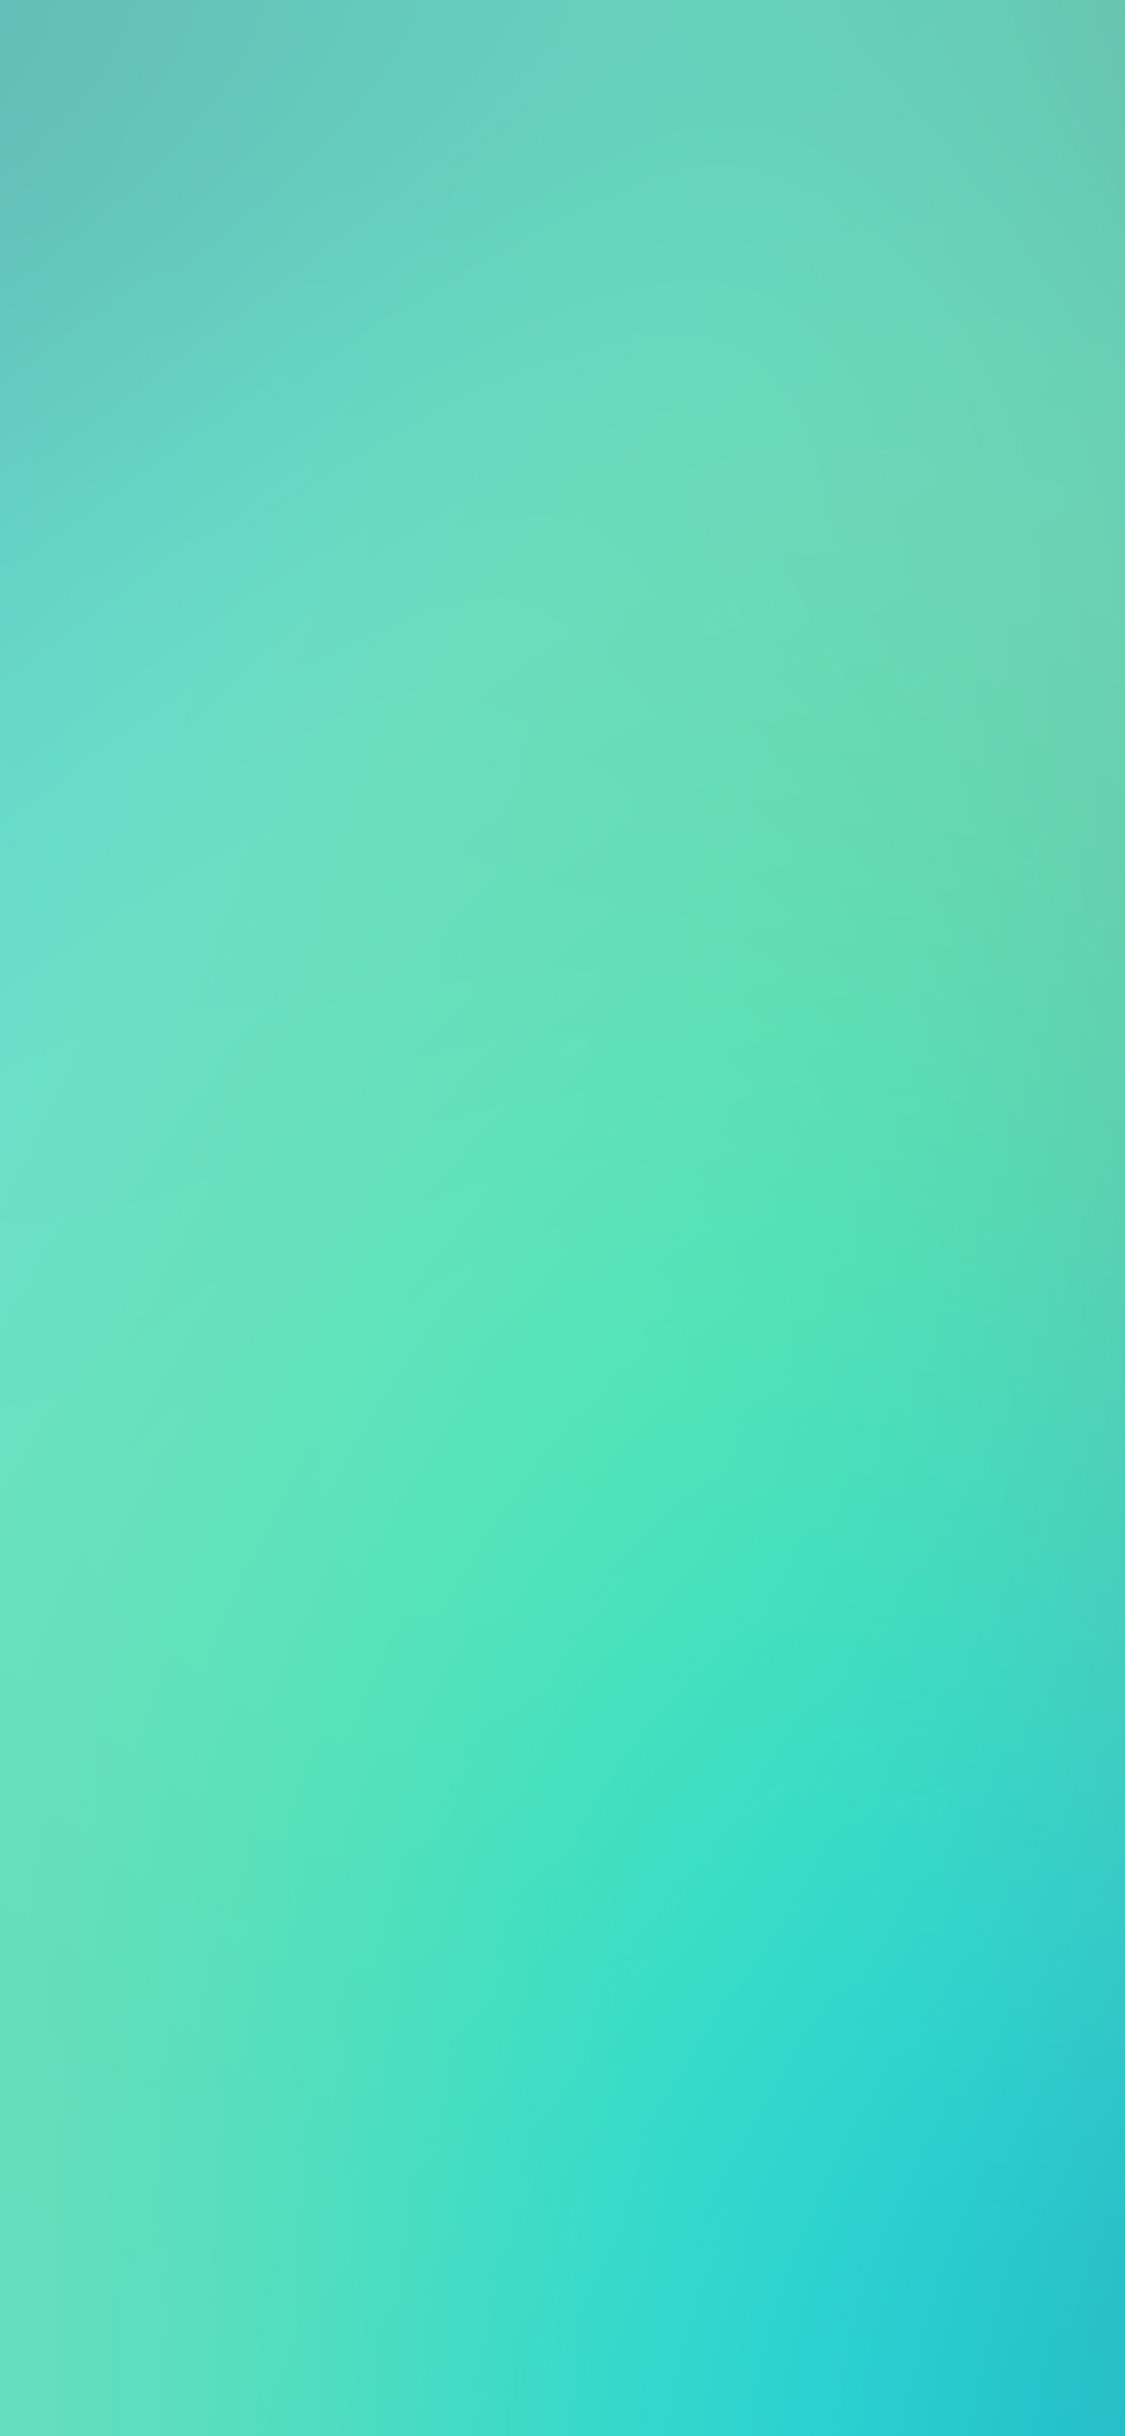 iPhoneXpapers.com-Apple-iPhone-wallpaper-sb98-triangle-world-green-blur